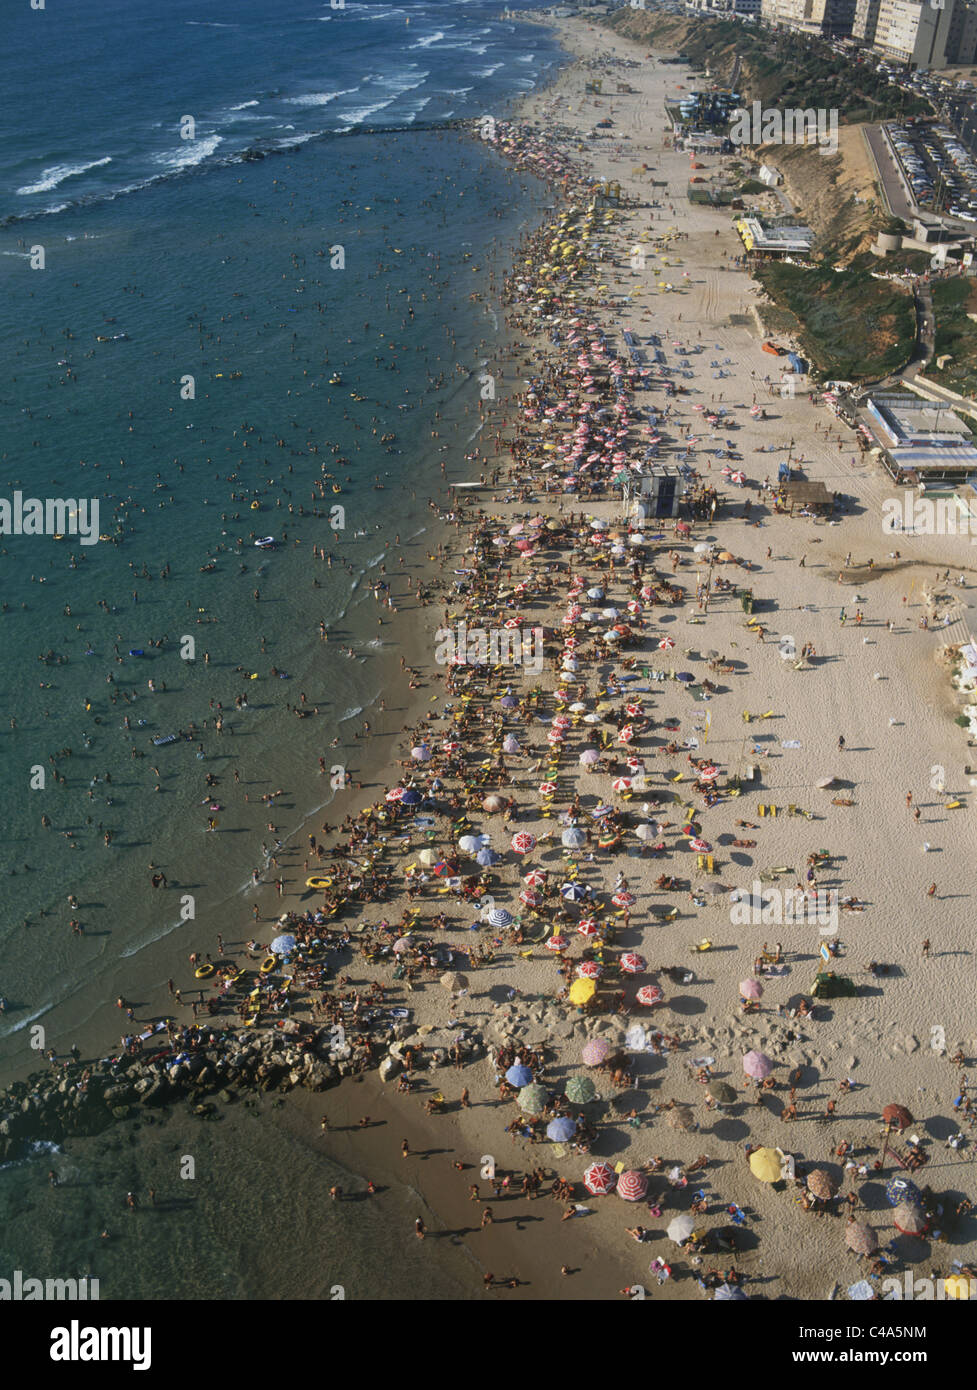 Aerial photograph of the beach of Ashkelon at summer - Stock Image